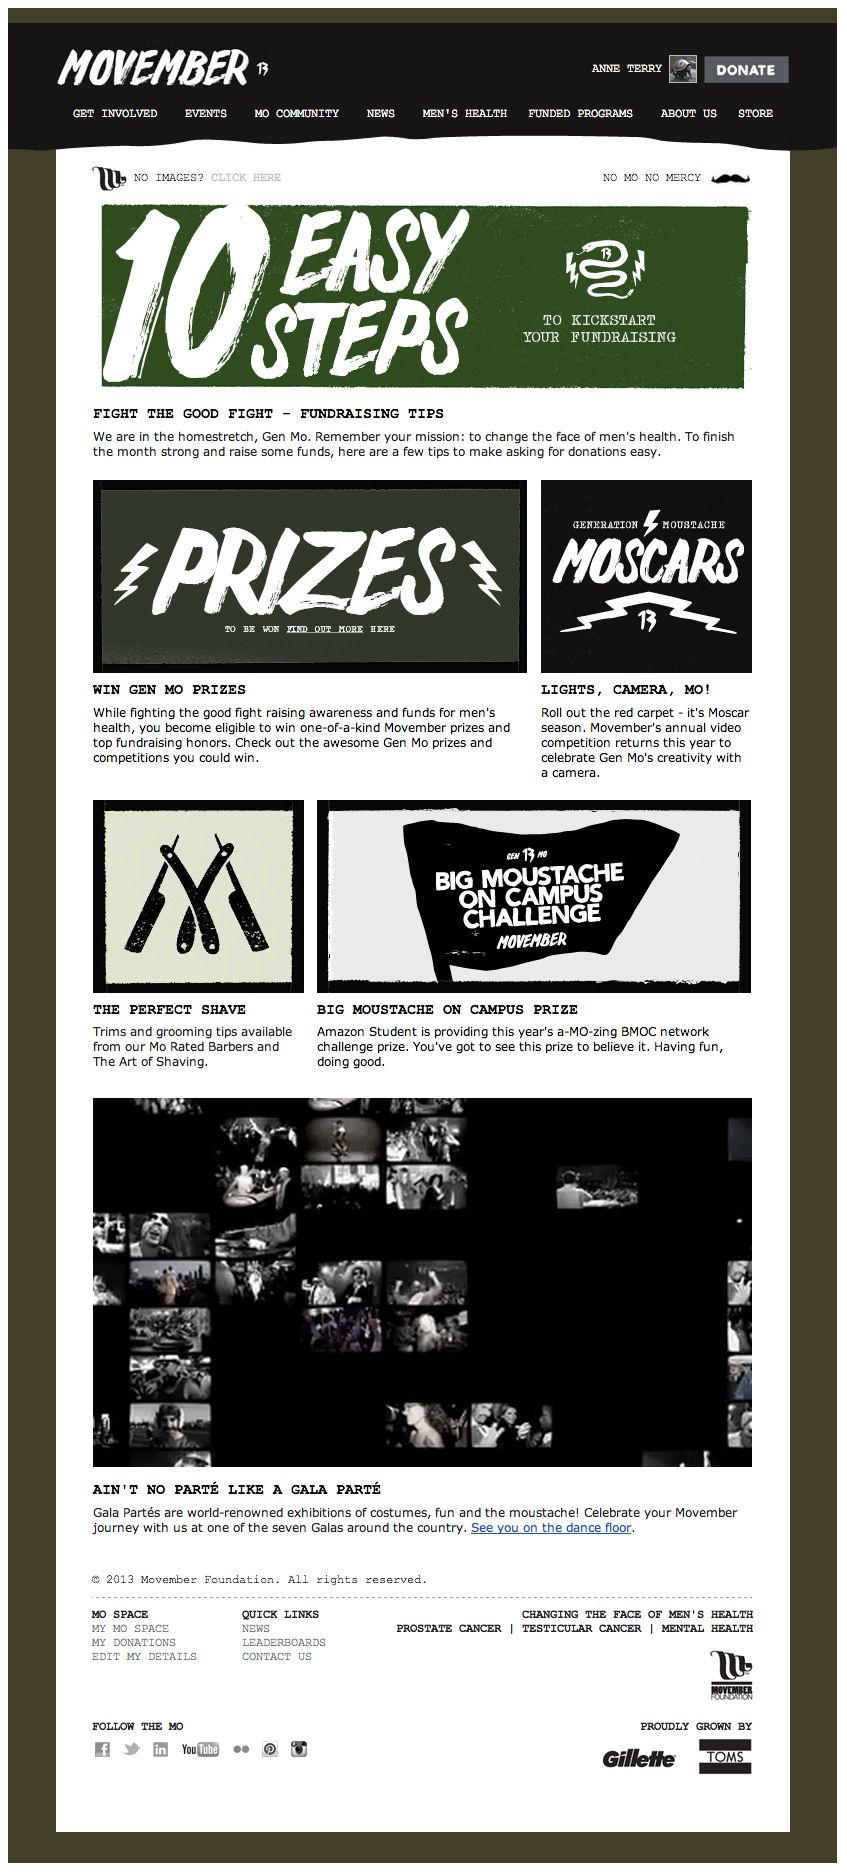 bf5f77496fe Movember embedded a video clip with scenes from Movember Gala parties  directly into this email campaign (above